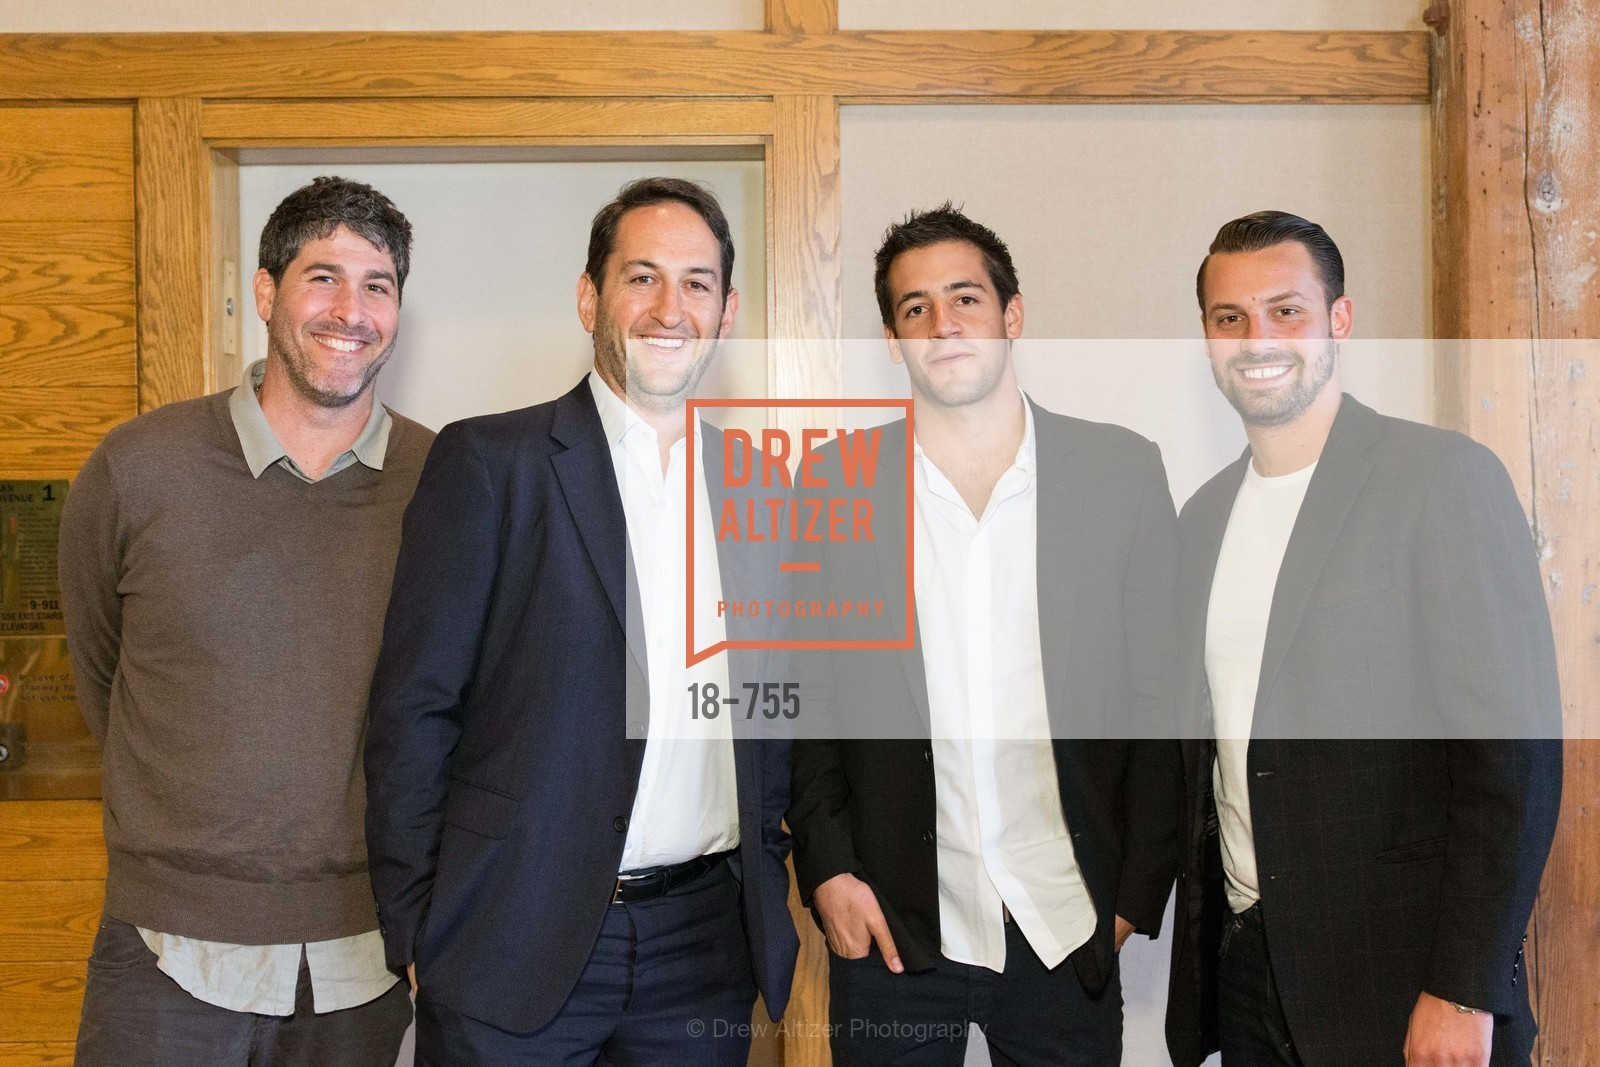 Greg Silverman, ENTOURAGE:  Private Event, US, May 31st, 2015,Drew Altizer, Drew Altizer Photography, full-service agency, private events, San Francisco photographer, photographer california